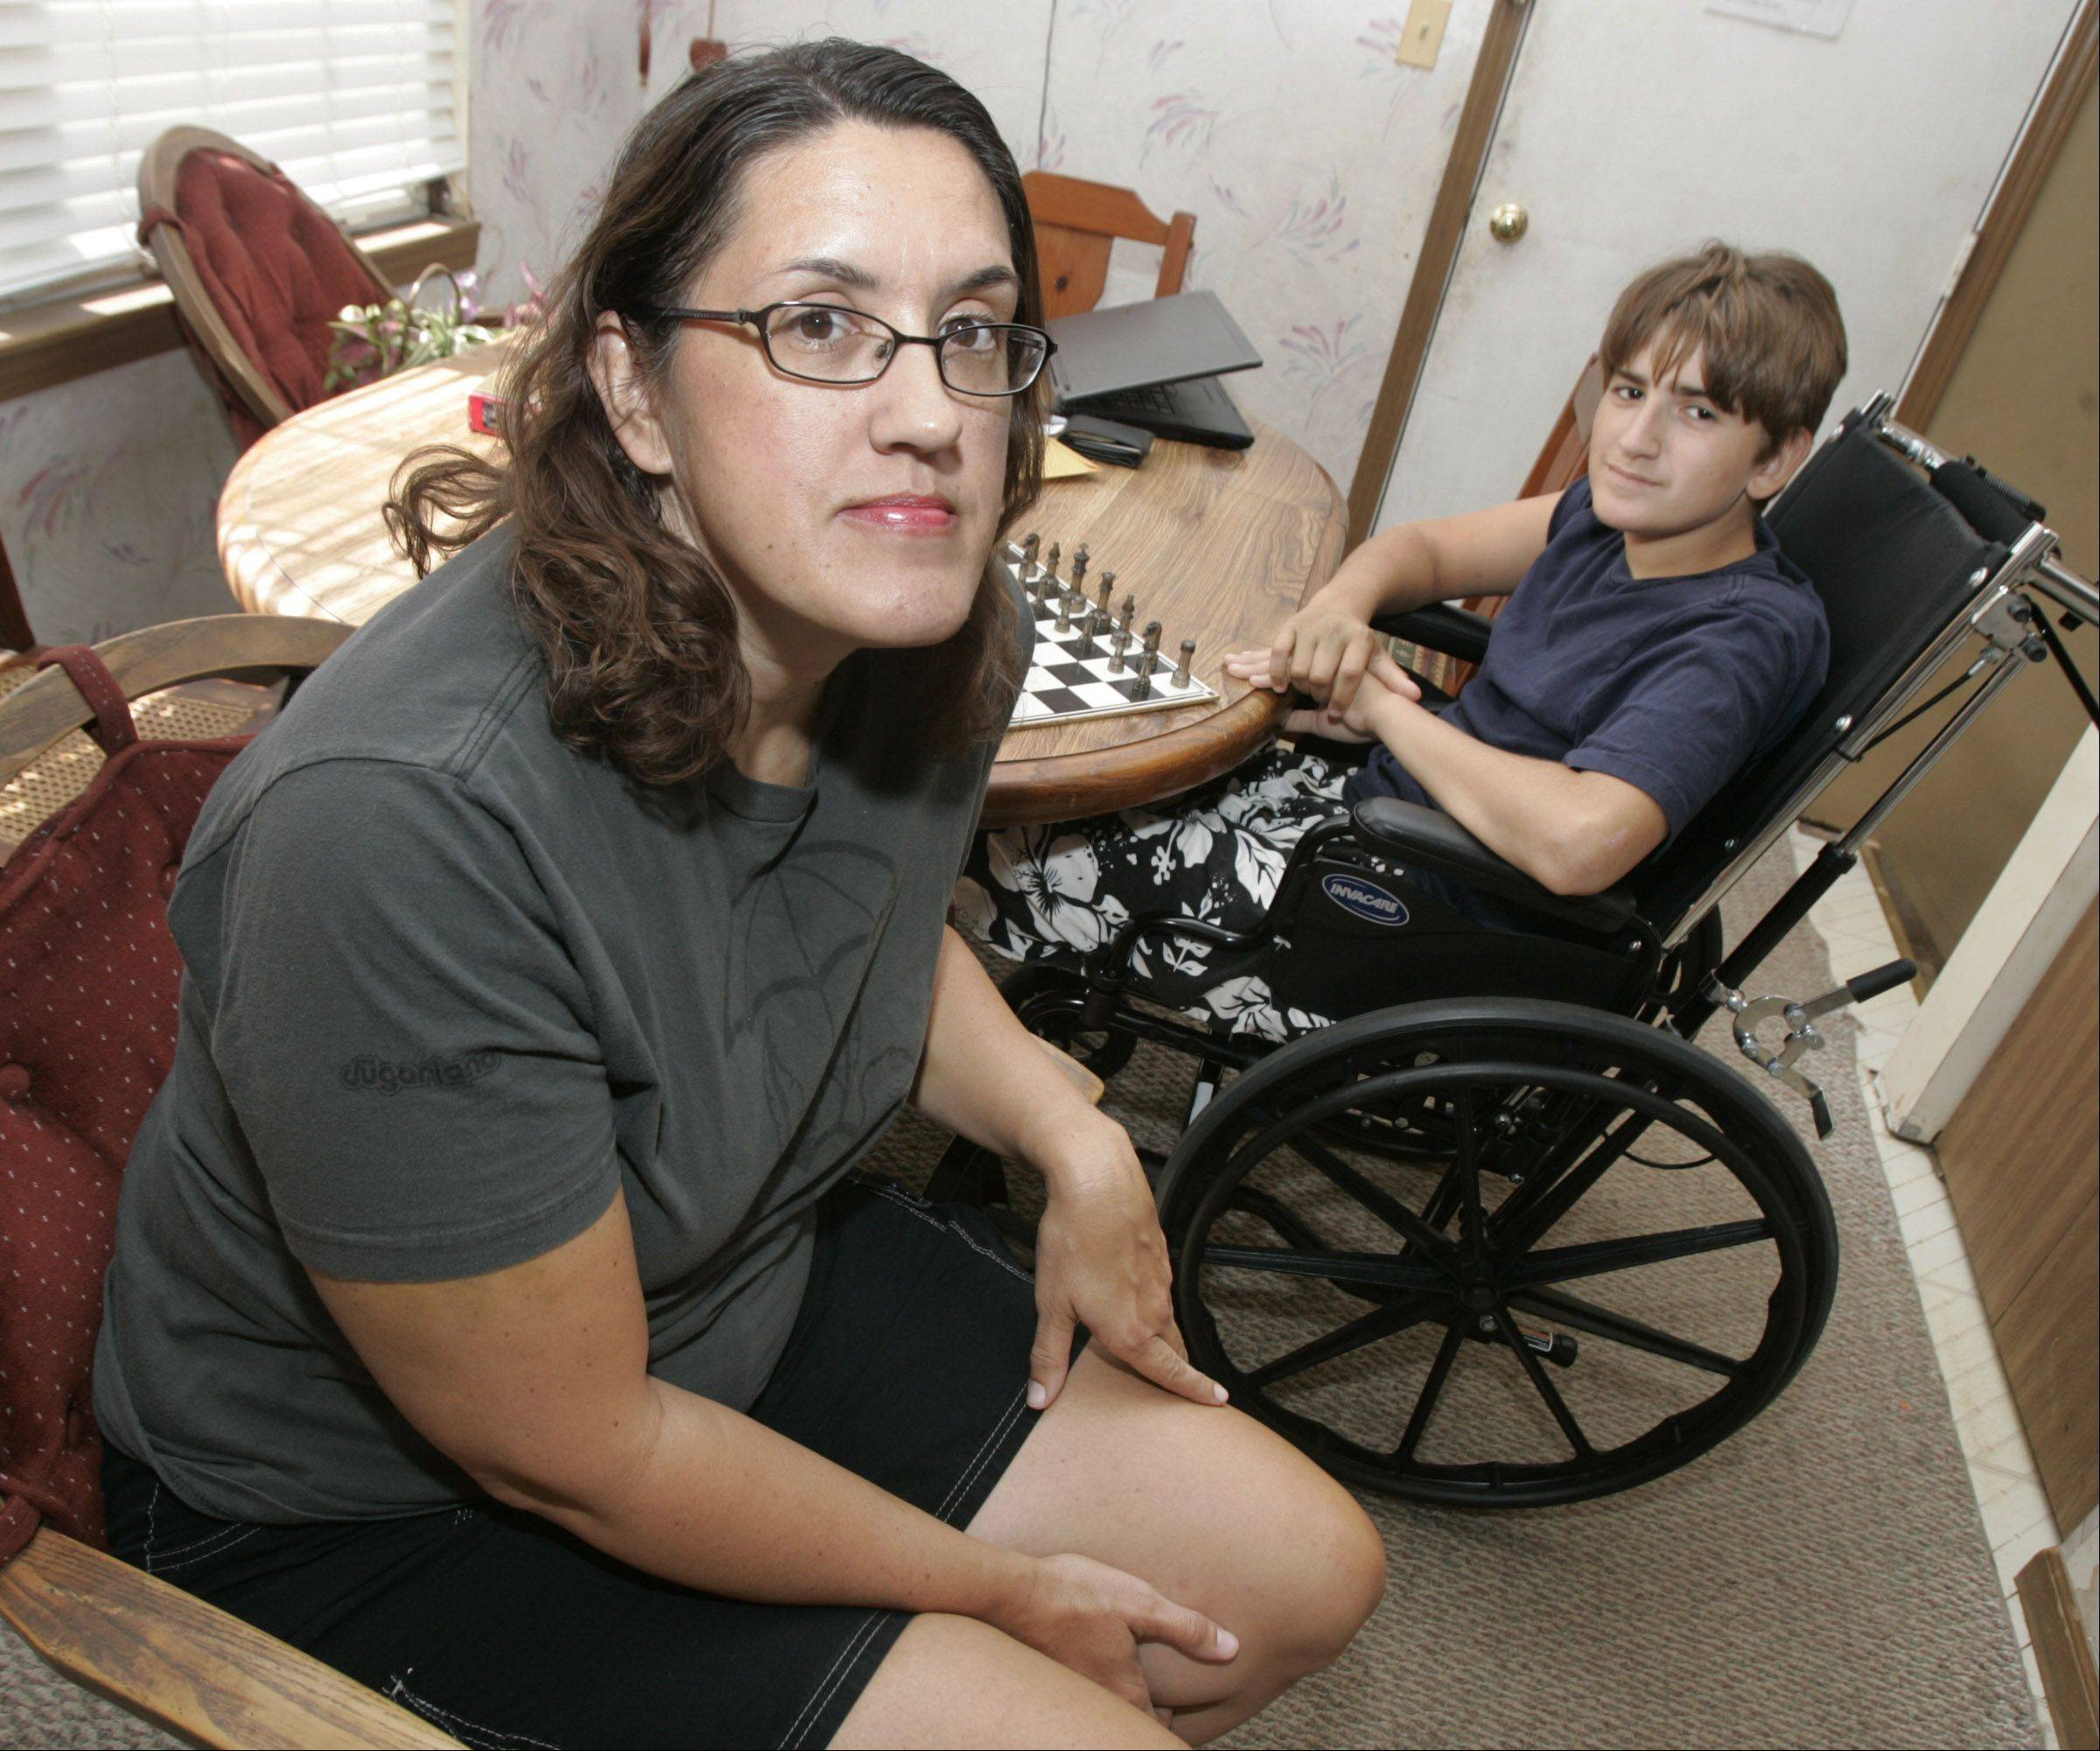 Karen Brunn and her 12-year-old son, Josh, say they feel lucky, despite the broken bones and other injuries they suffered when a stage collapsed on them Aug. 13 at the Indiana State Fair.